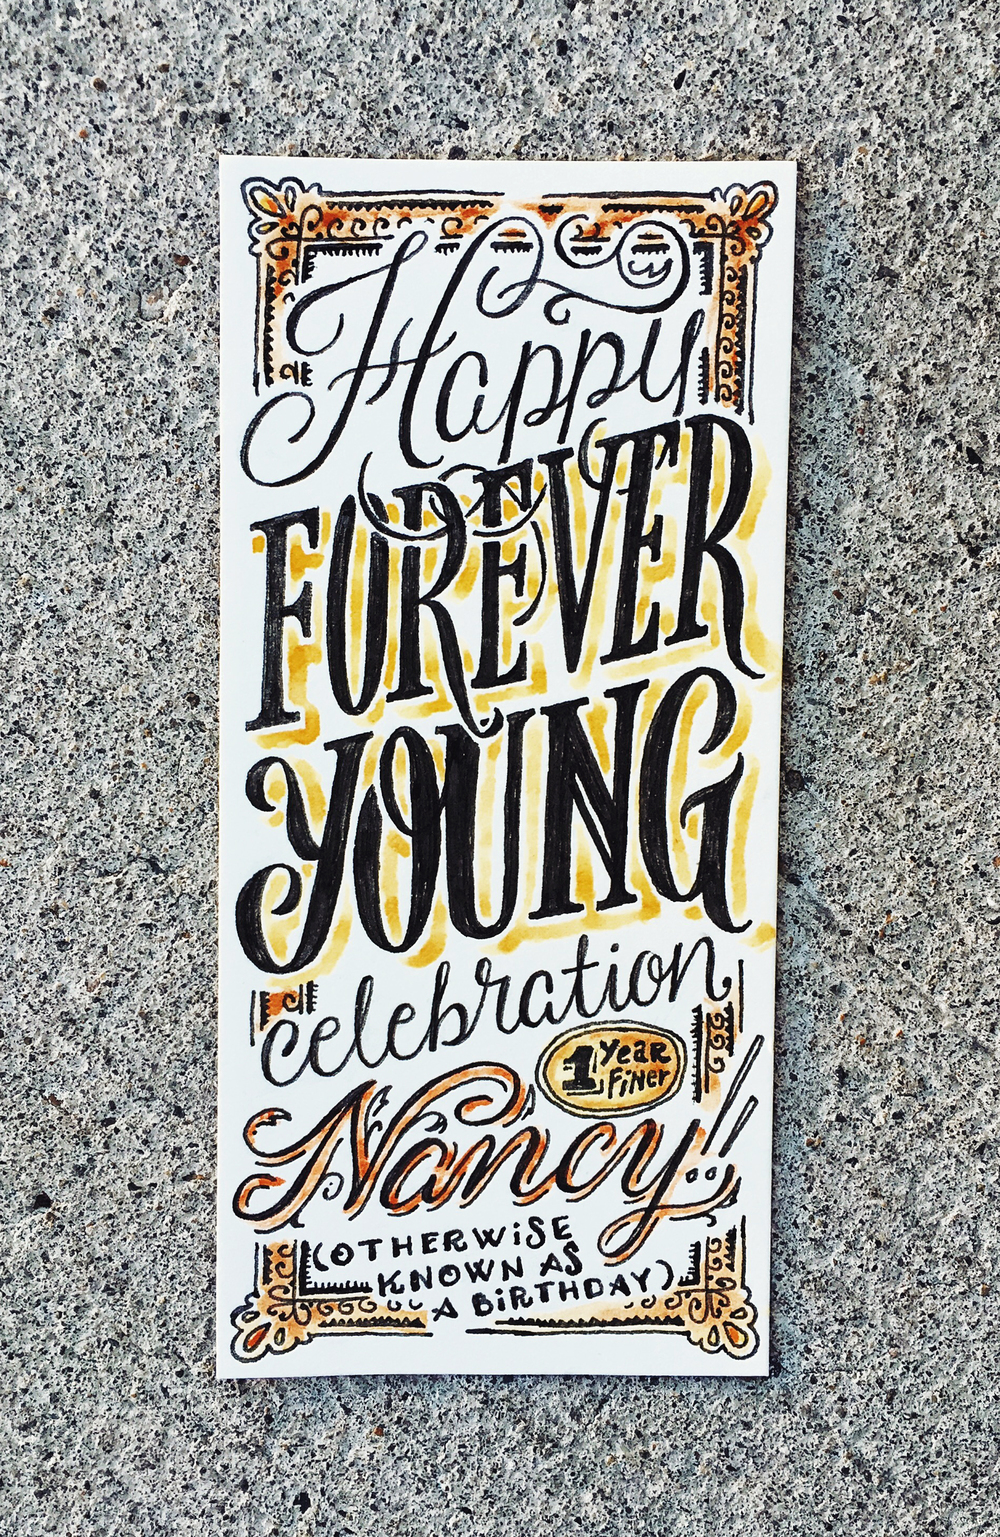 Hand-lettered birthday card for one of my favorite people.